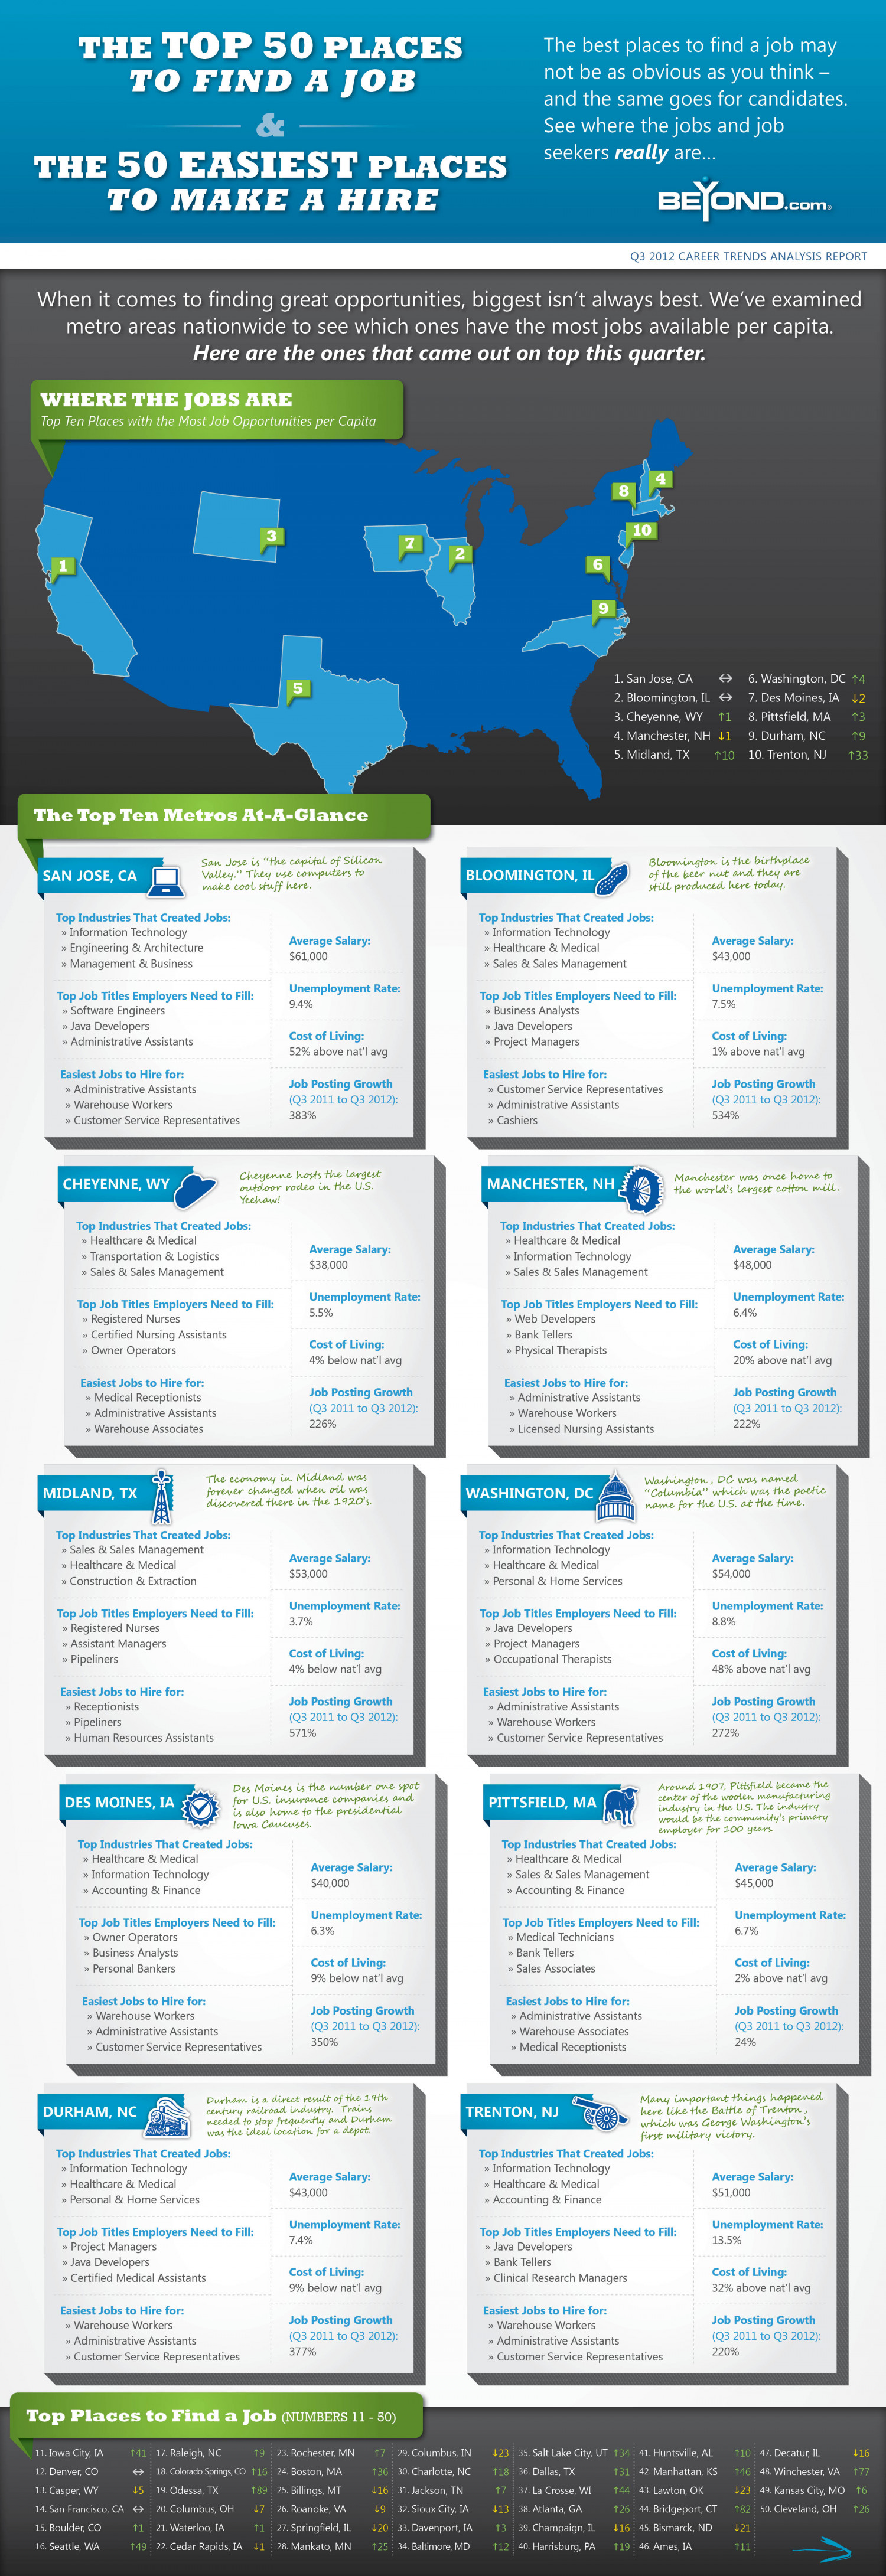 The Top 50 Places to Find a Job Infographic